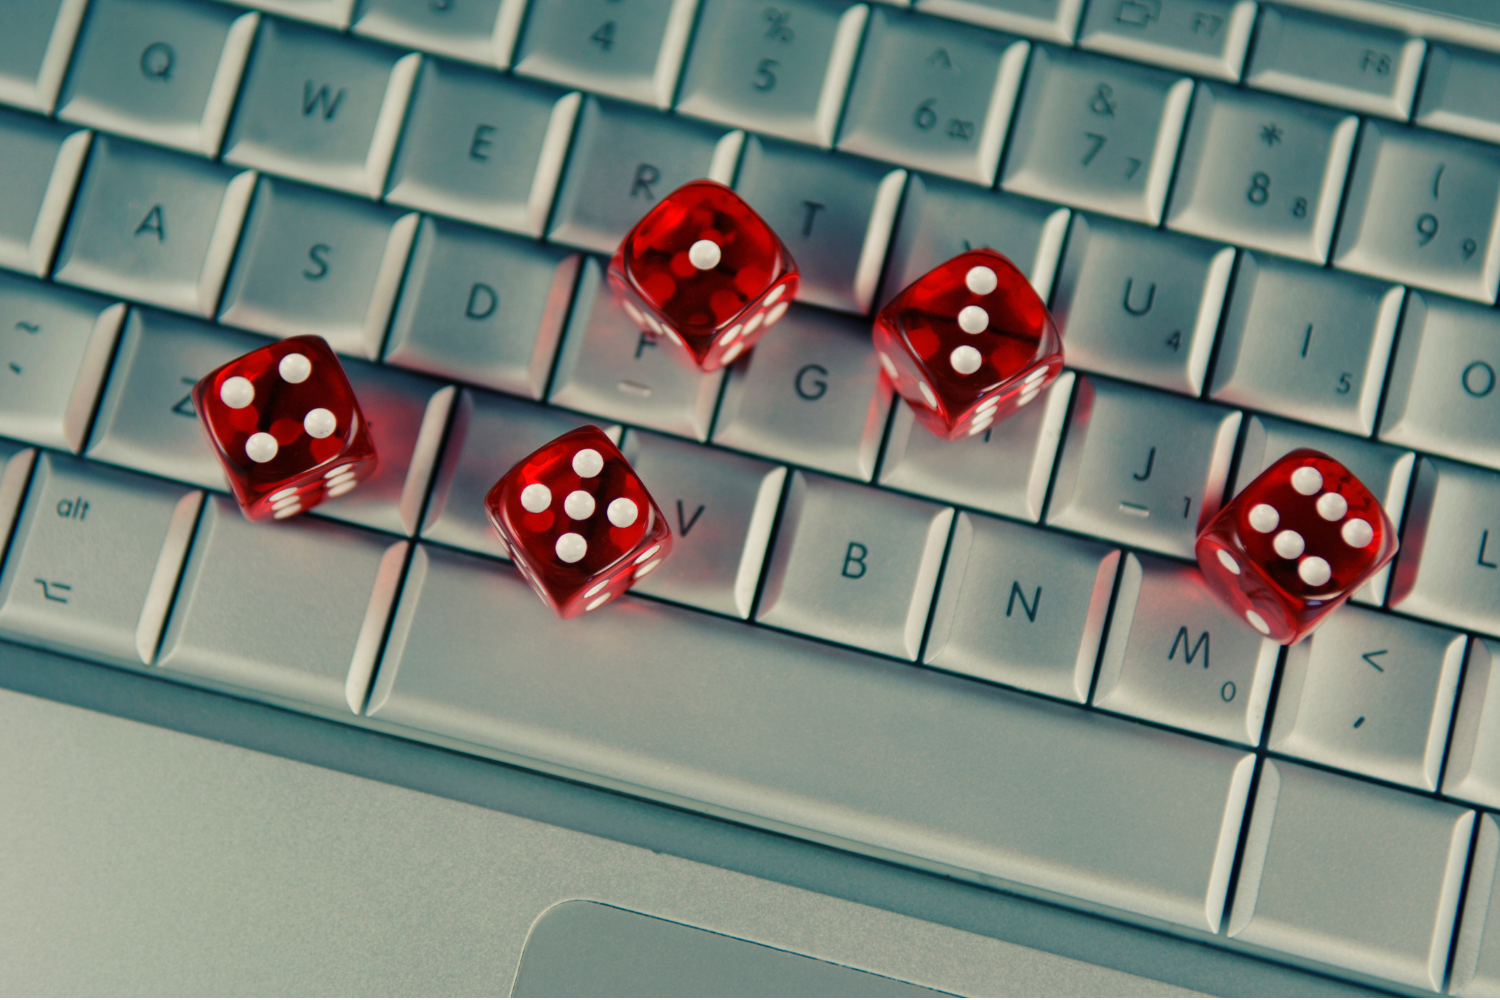 Gambling: Update on new Directive 6/2021